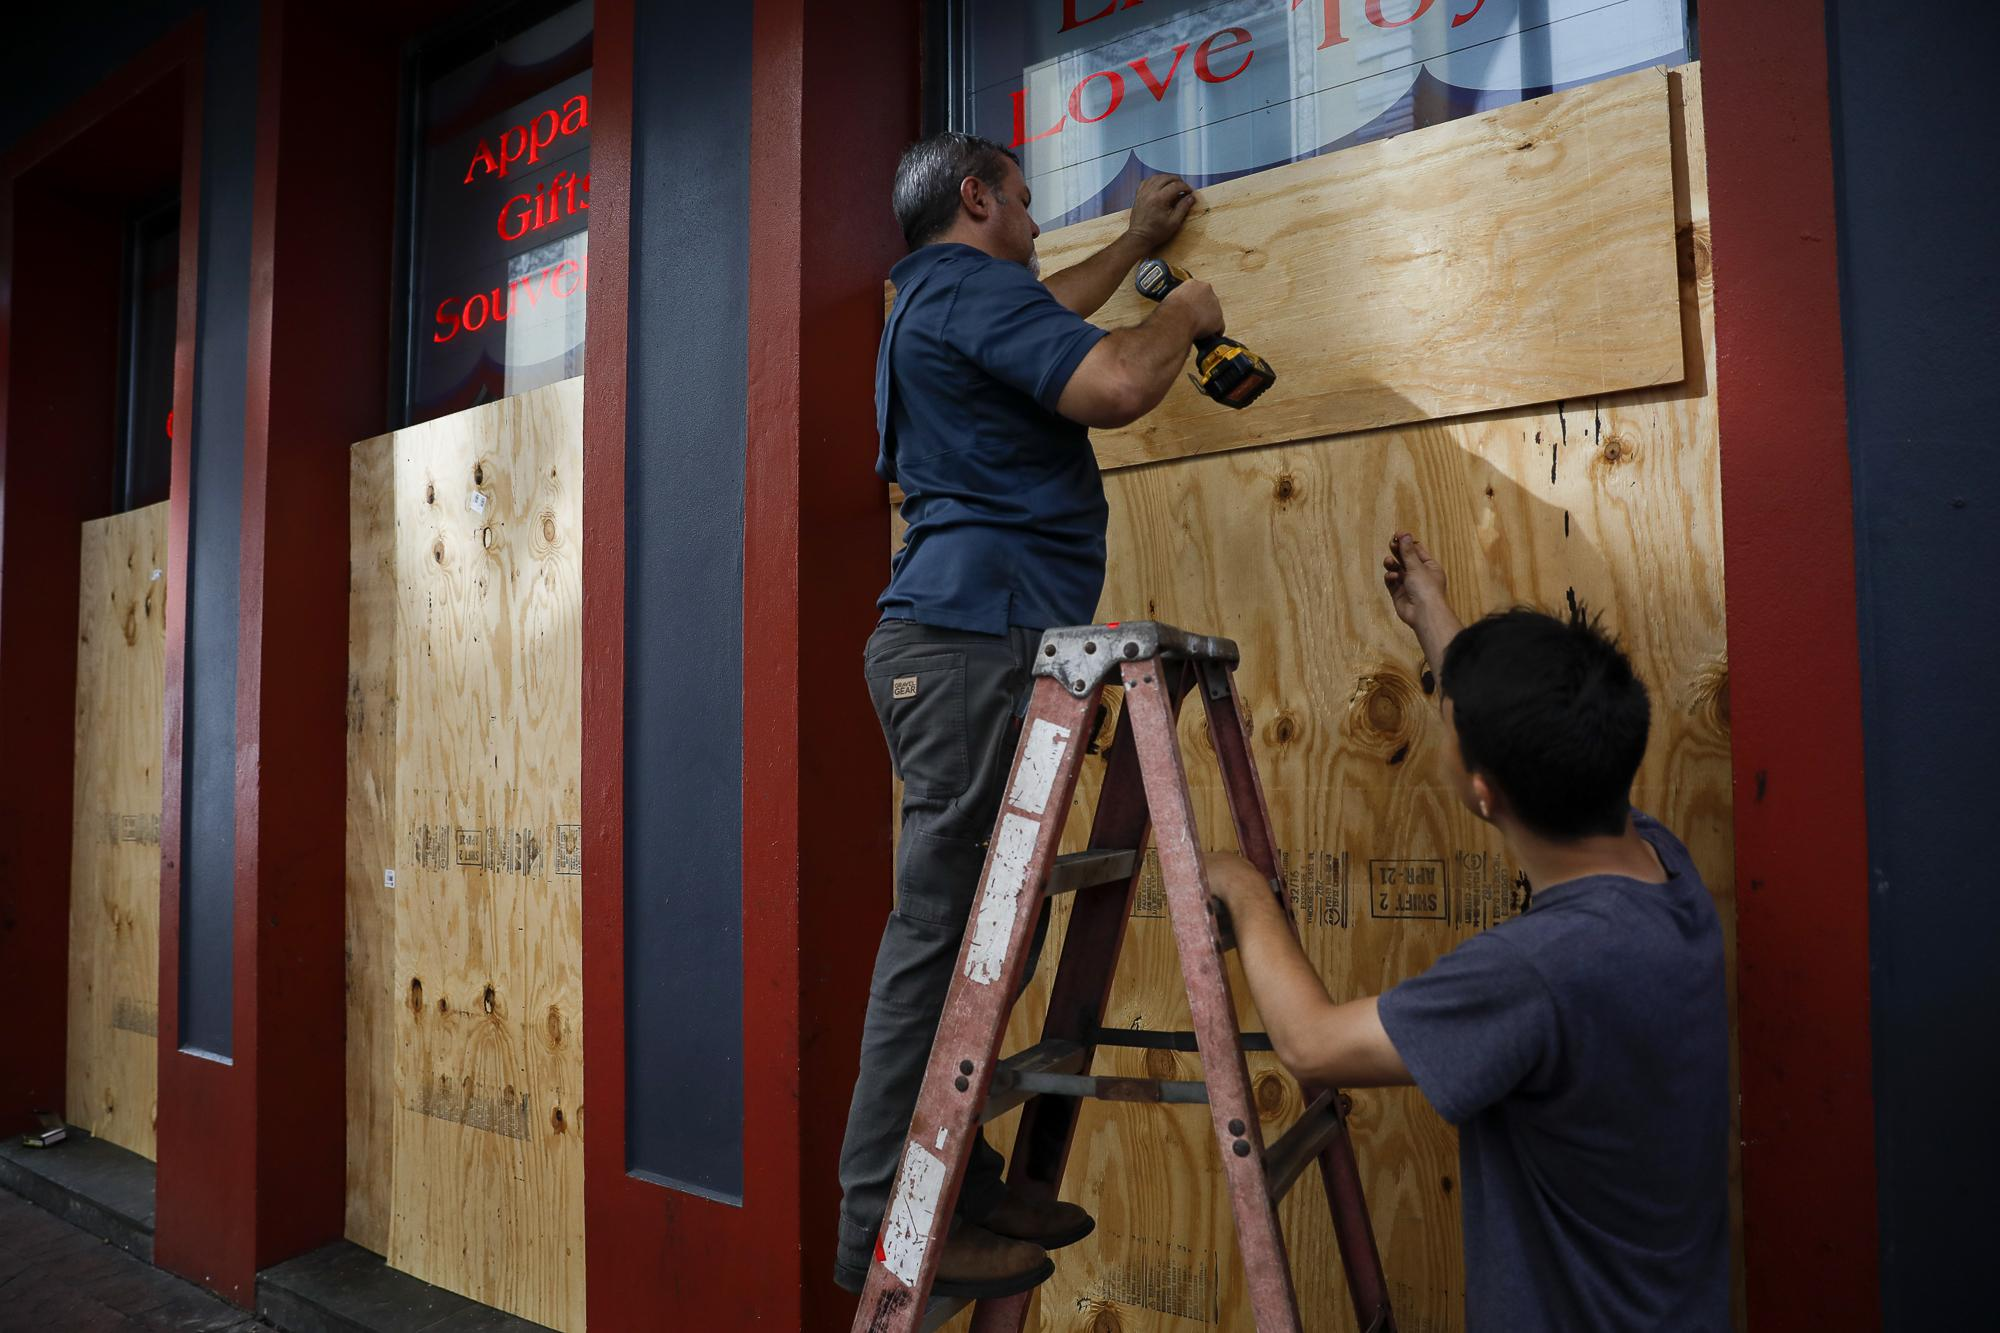 Men place plywood in front of a store in preparation for Hurricane Ida, in New Orleans, Lousiana, U.S. August 28, 2021. REUTERS/Marco Bello